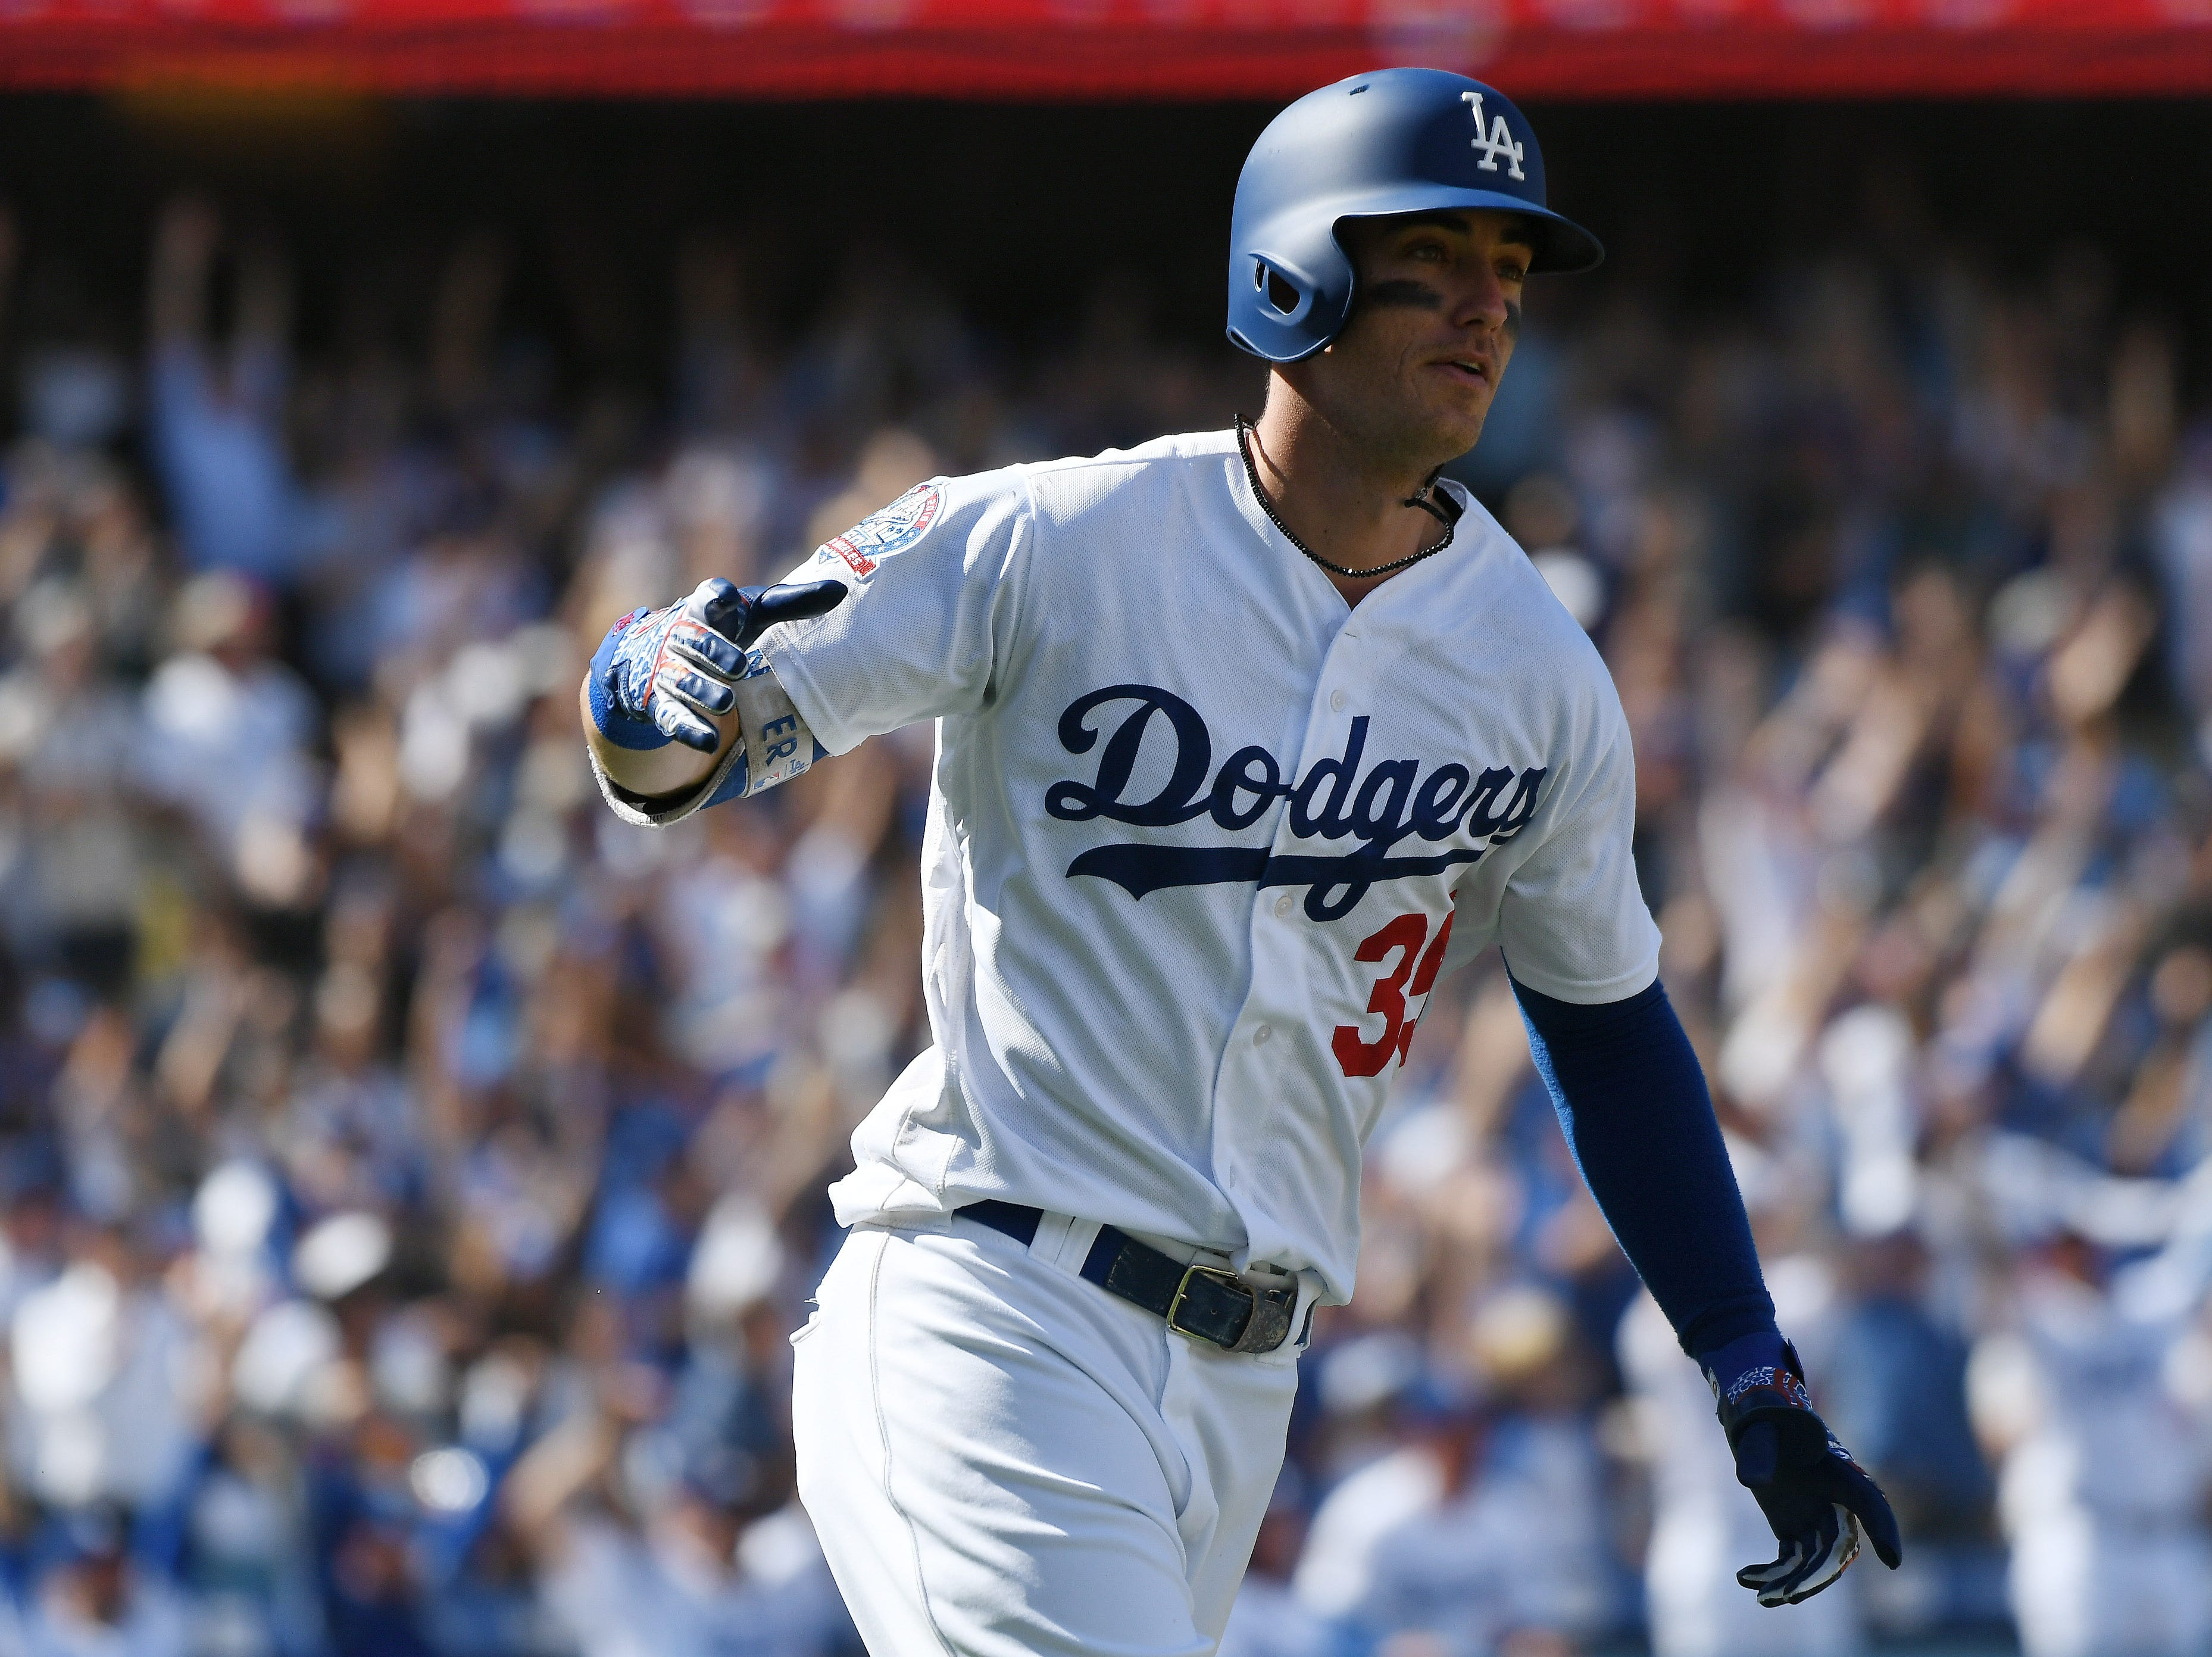 Cody Bellinger rounds the bases after his home run in the fourth inning.